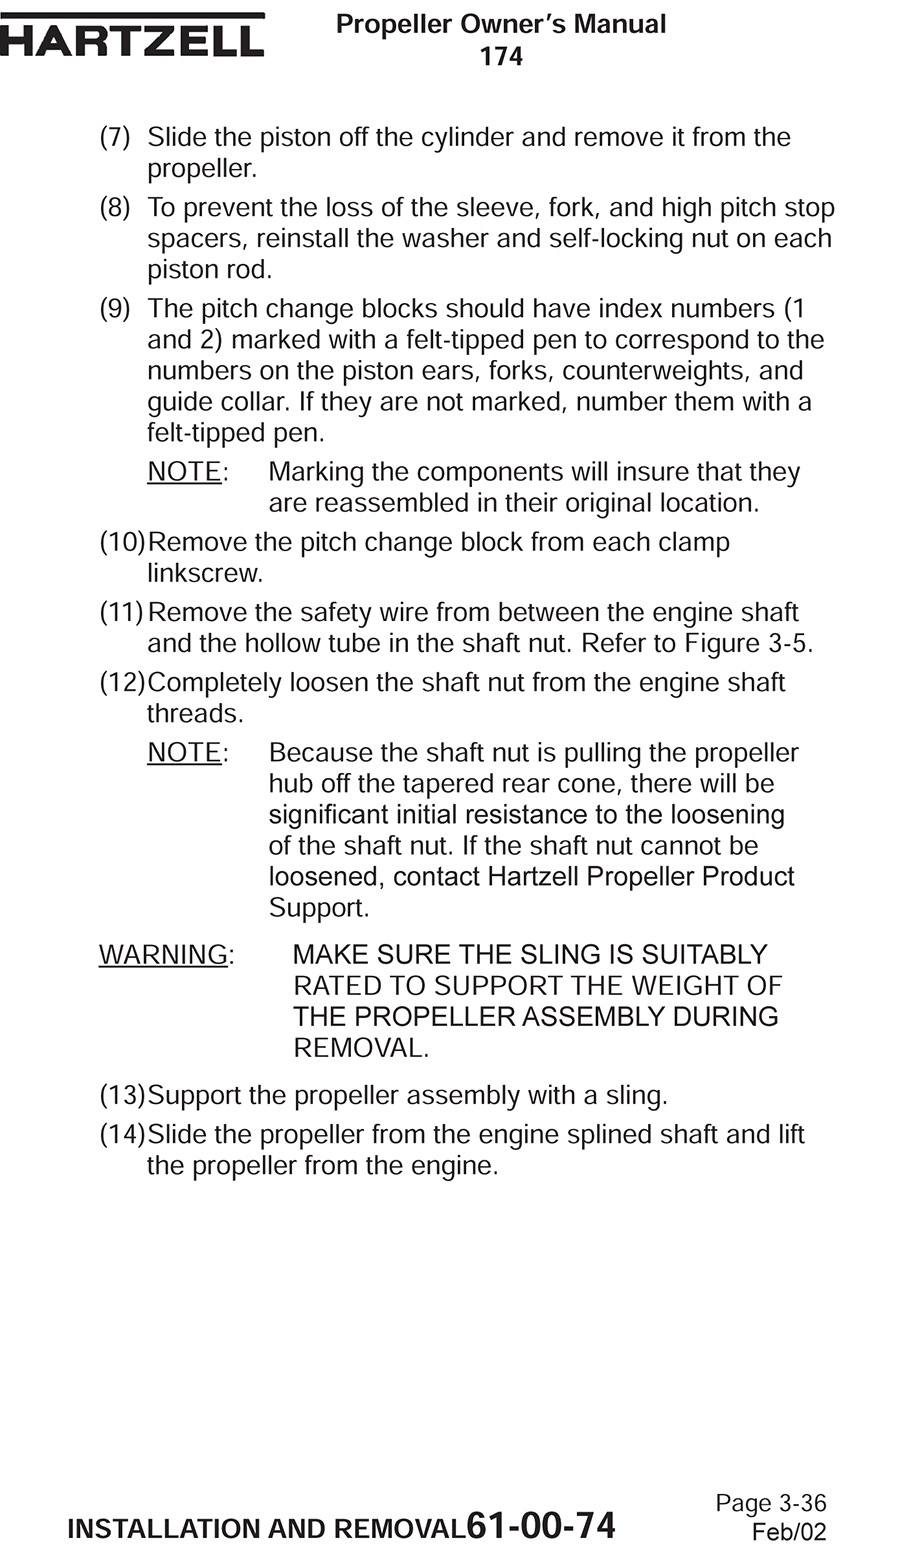 Hartzell Prop Manual 2010 page88